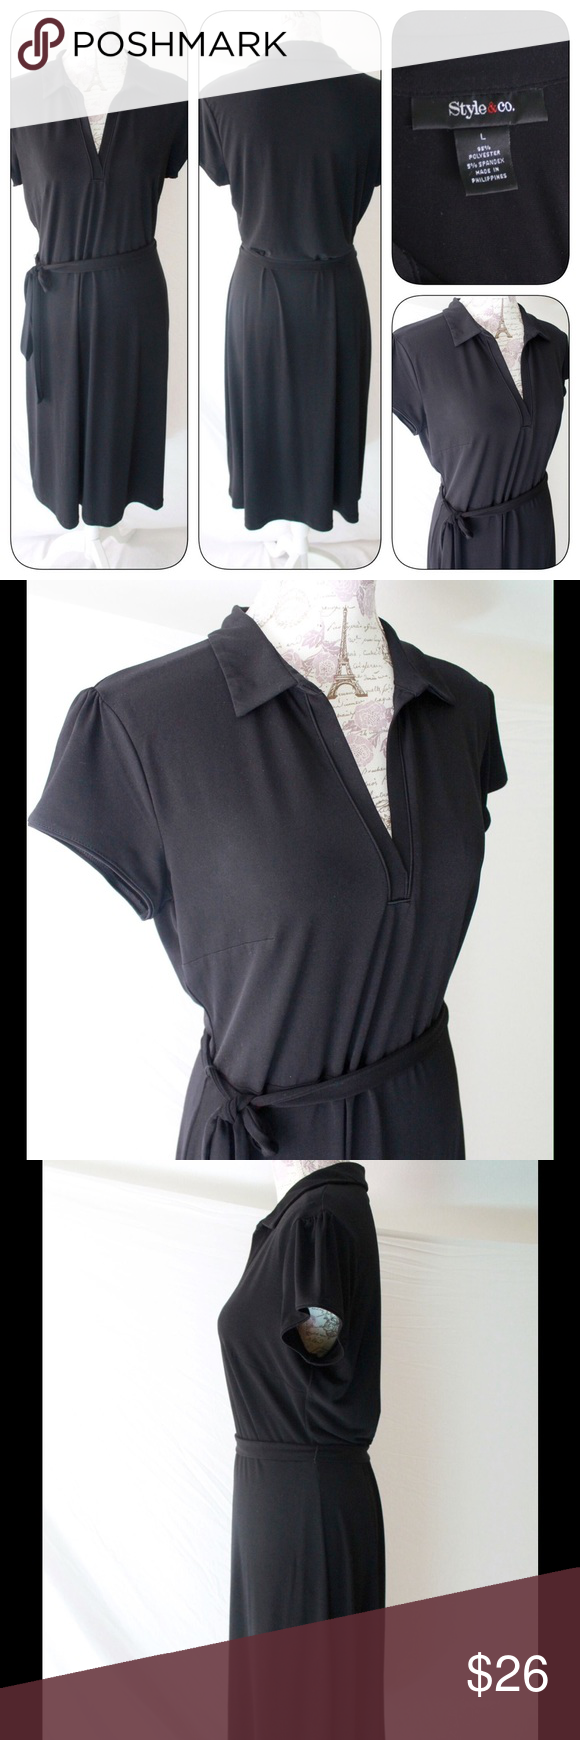 Style & Co Black Pullover Dress, Lg. Collared, V This is a Style & Co. Pullover Black Dress in size Large.  Collared with cap sleeves; V neck with self-tie belt.  95% poly and 5% spandex.  Versatile and classic in style.  Just like new. Style & Co Dresses